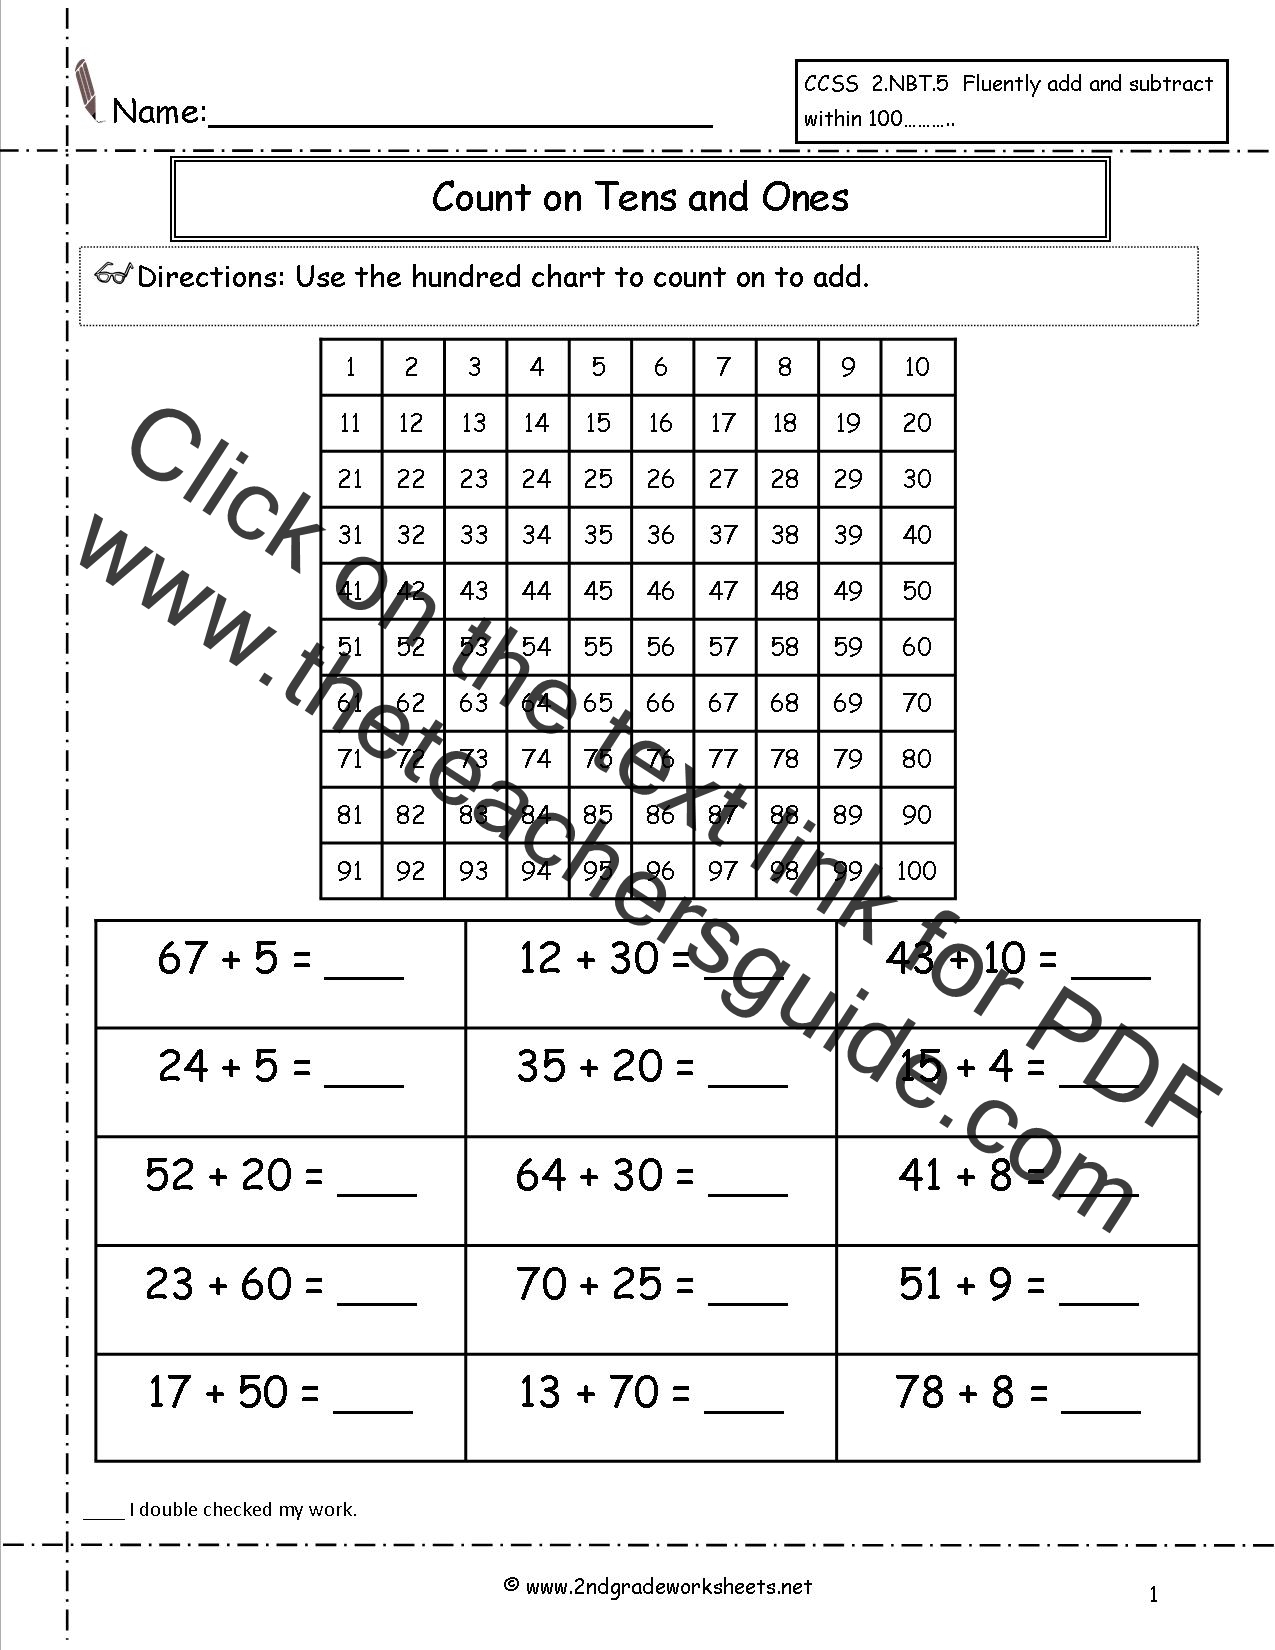 Two Digit Addition Worksheets – Two Digit Addition with Regrouping Worksheet